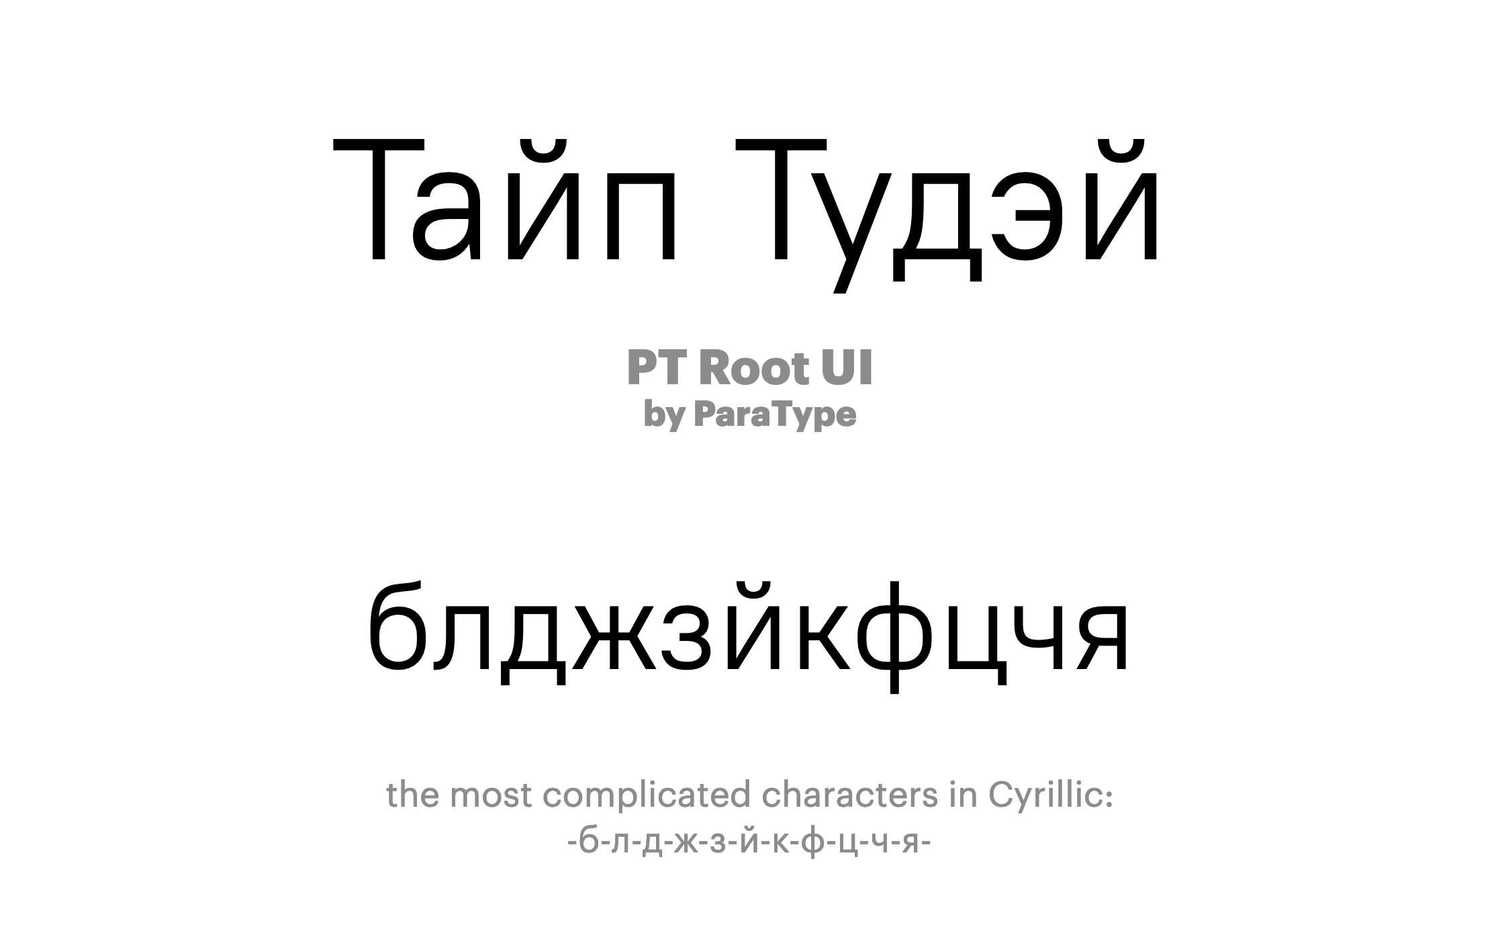 PT-Root-UI-by-ParaType